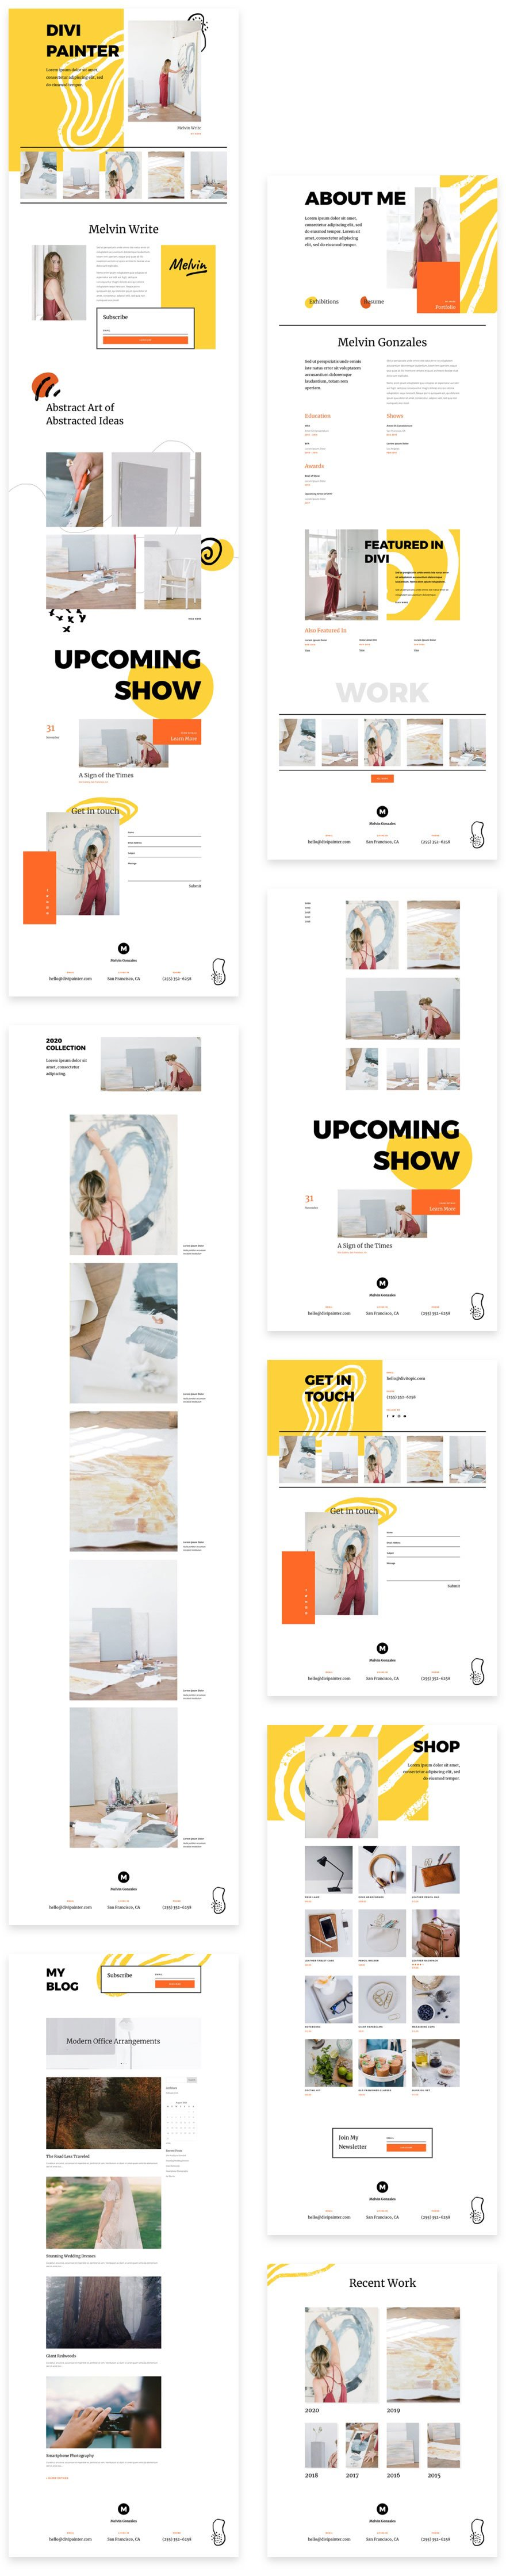 divi painter layout pack